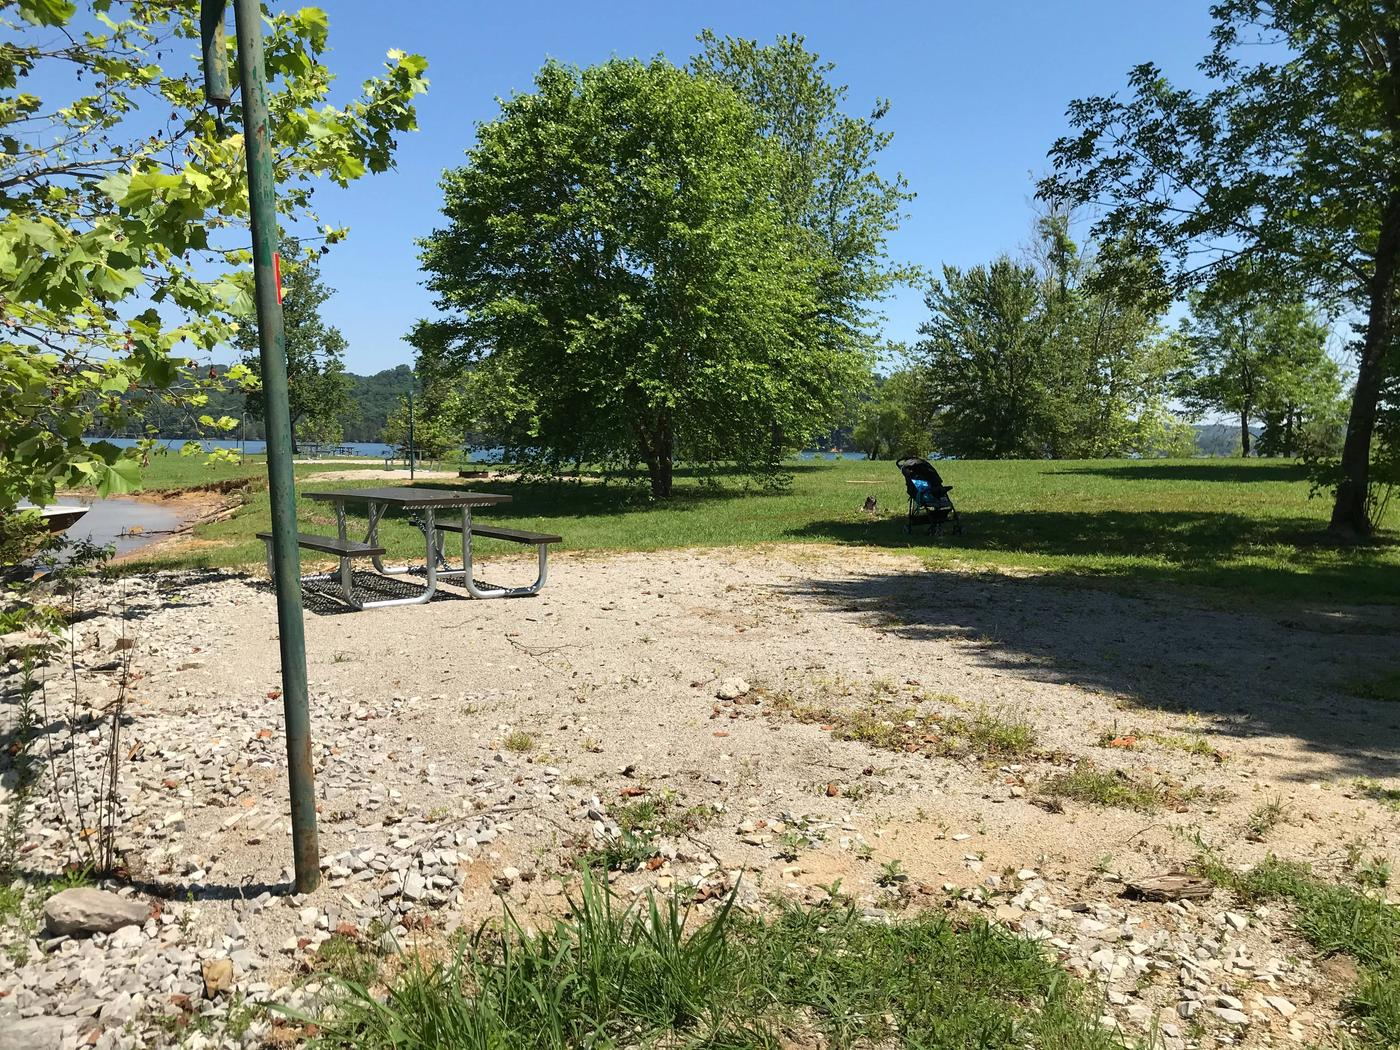 LILLYDALE CAMPGROUND SITE # 113 SIDE VIEWLILLYDALE CAMPGROUND SITE # 113